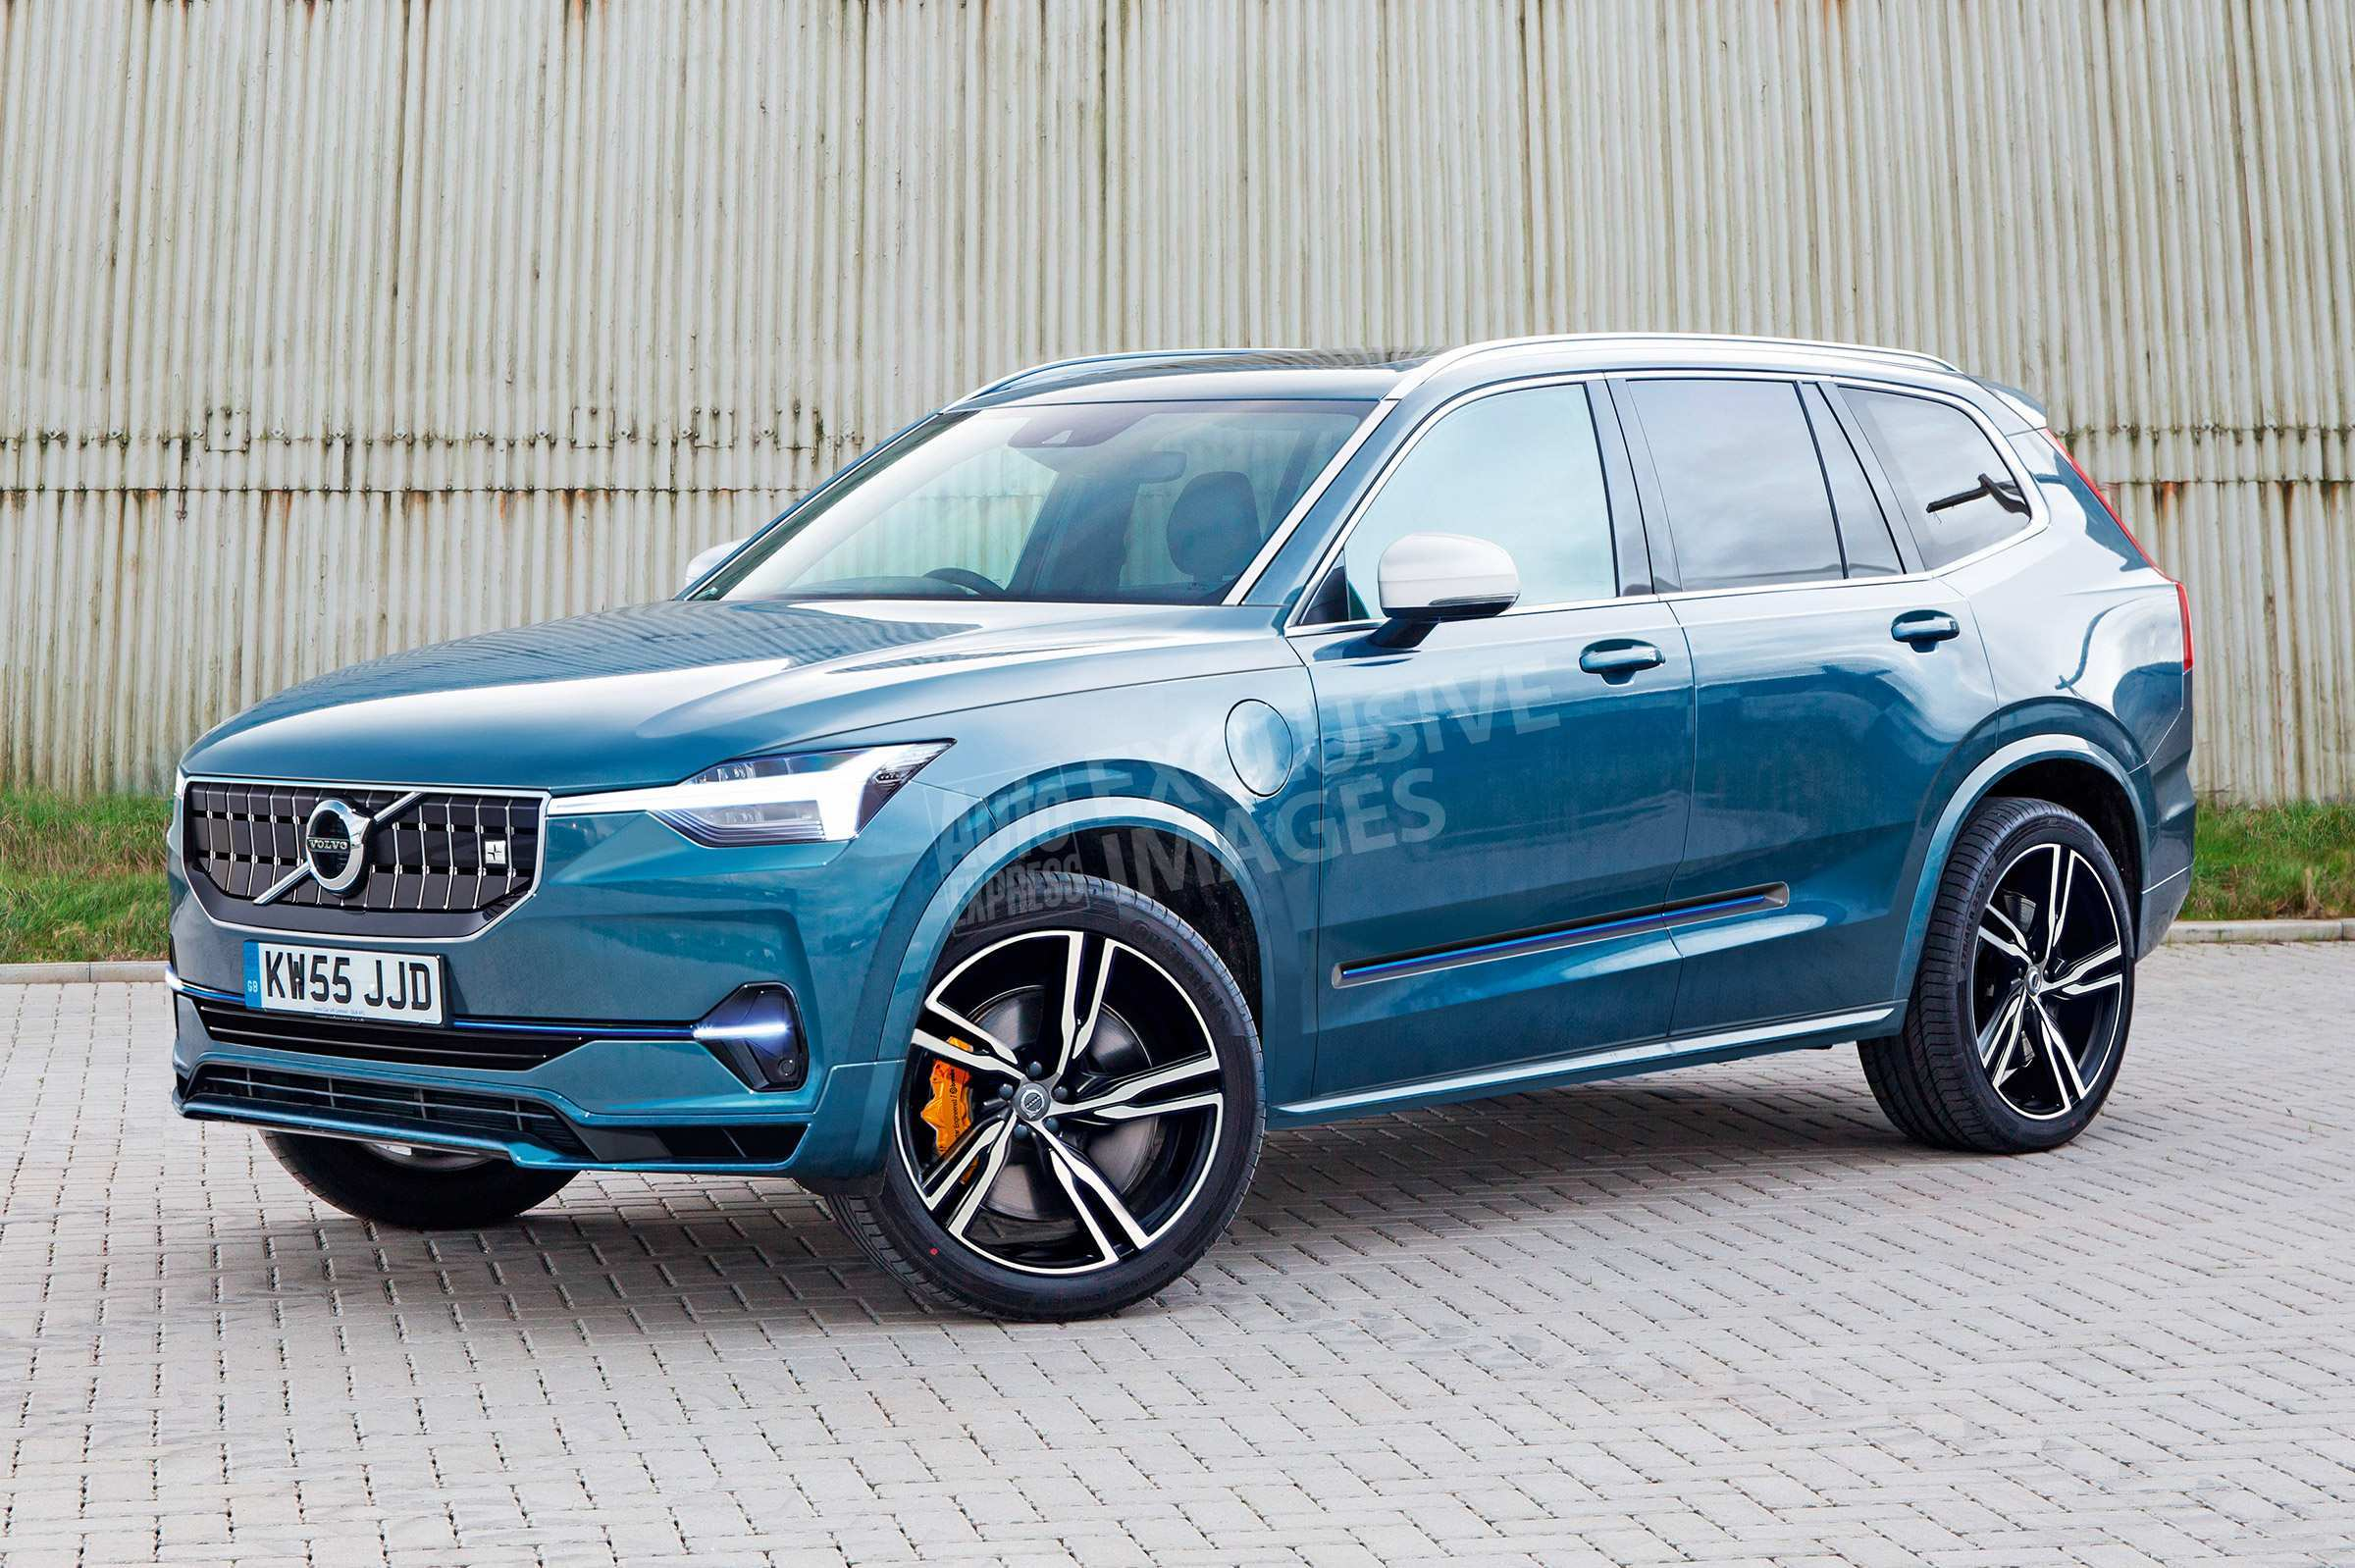 65 New När Kommer Volvo 2020 Concept And Review